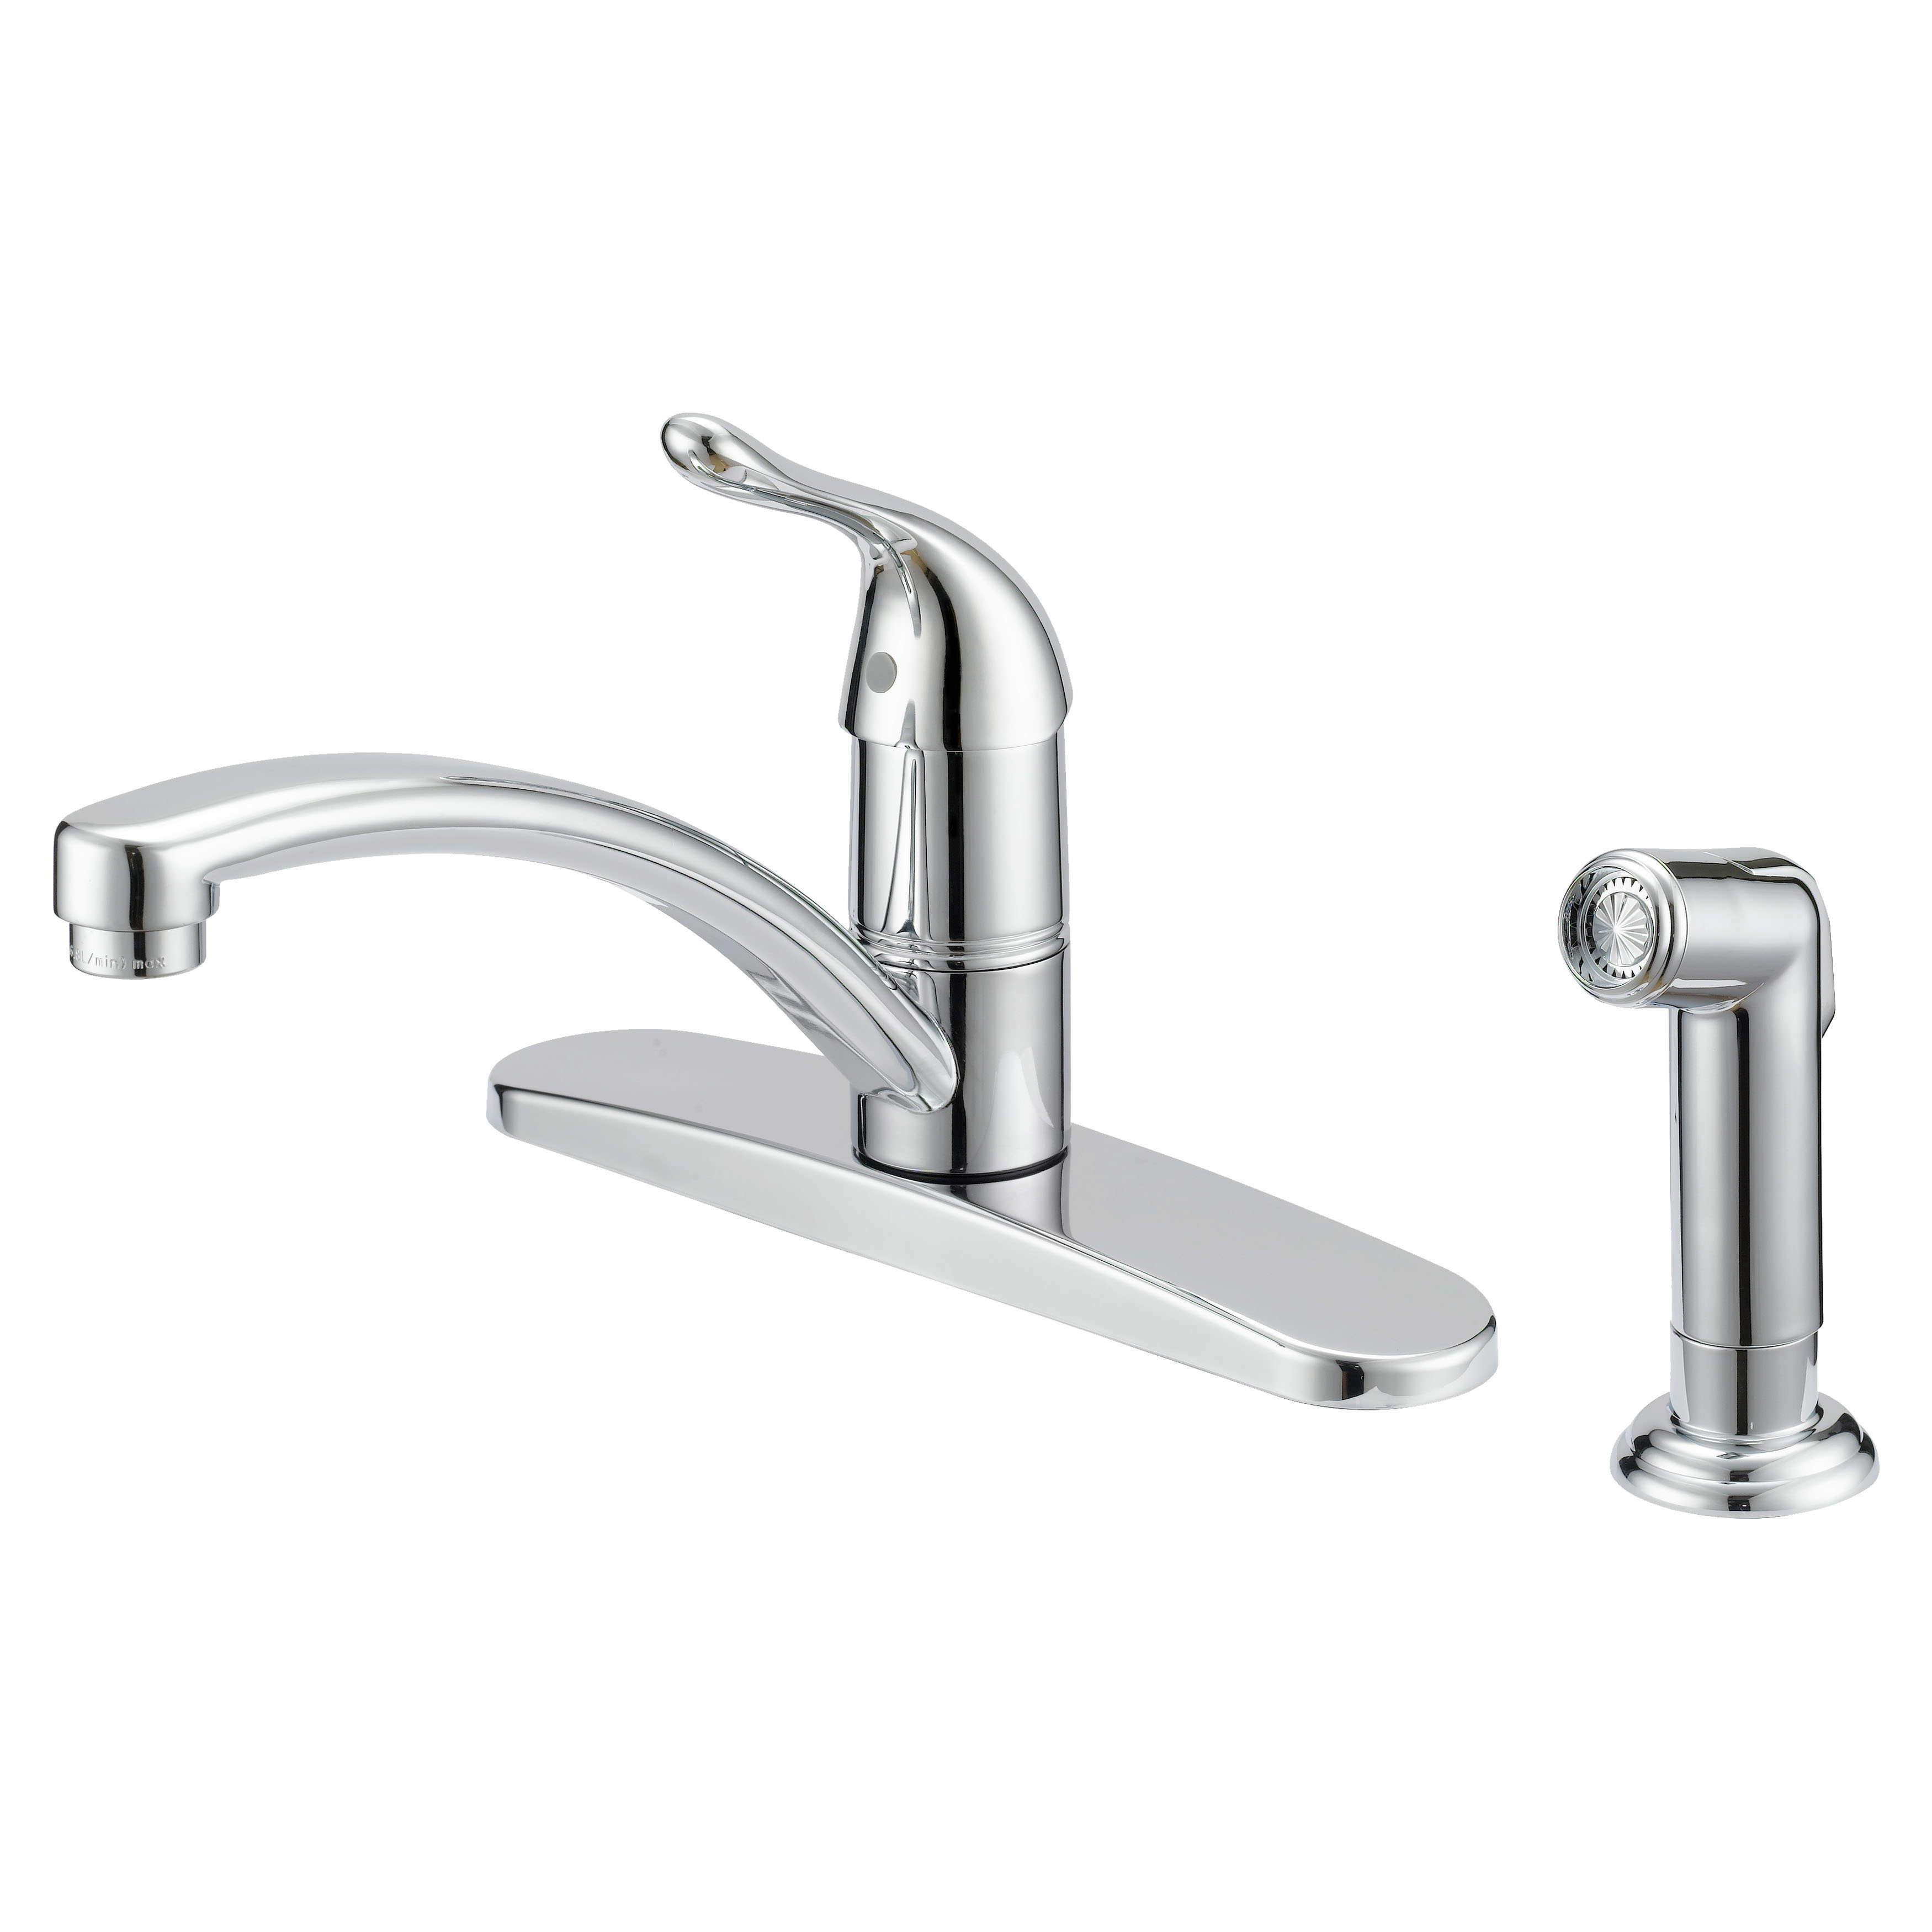 Picture of Boston Harbor 67534-1001 Kitchen Faucet, 1.8 gpm, 1-Faucet Handle, Metal, Chrome, Lever Handle